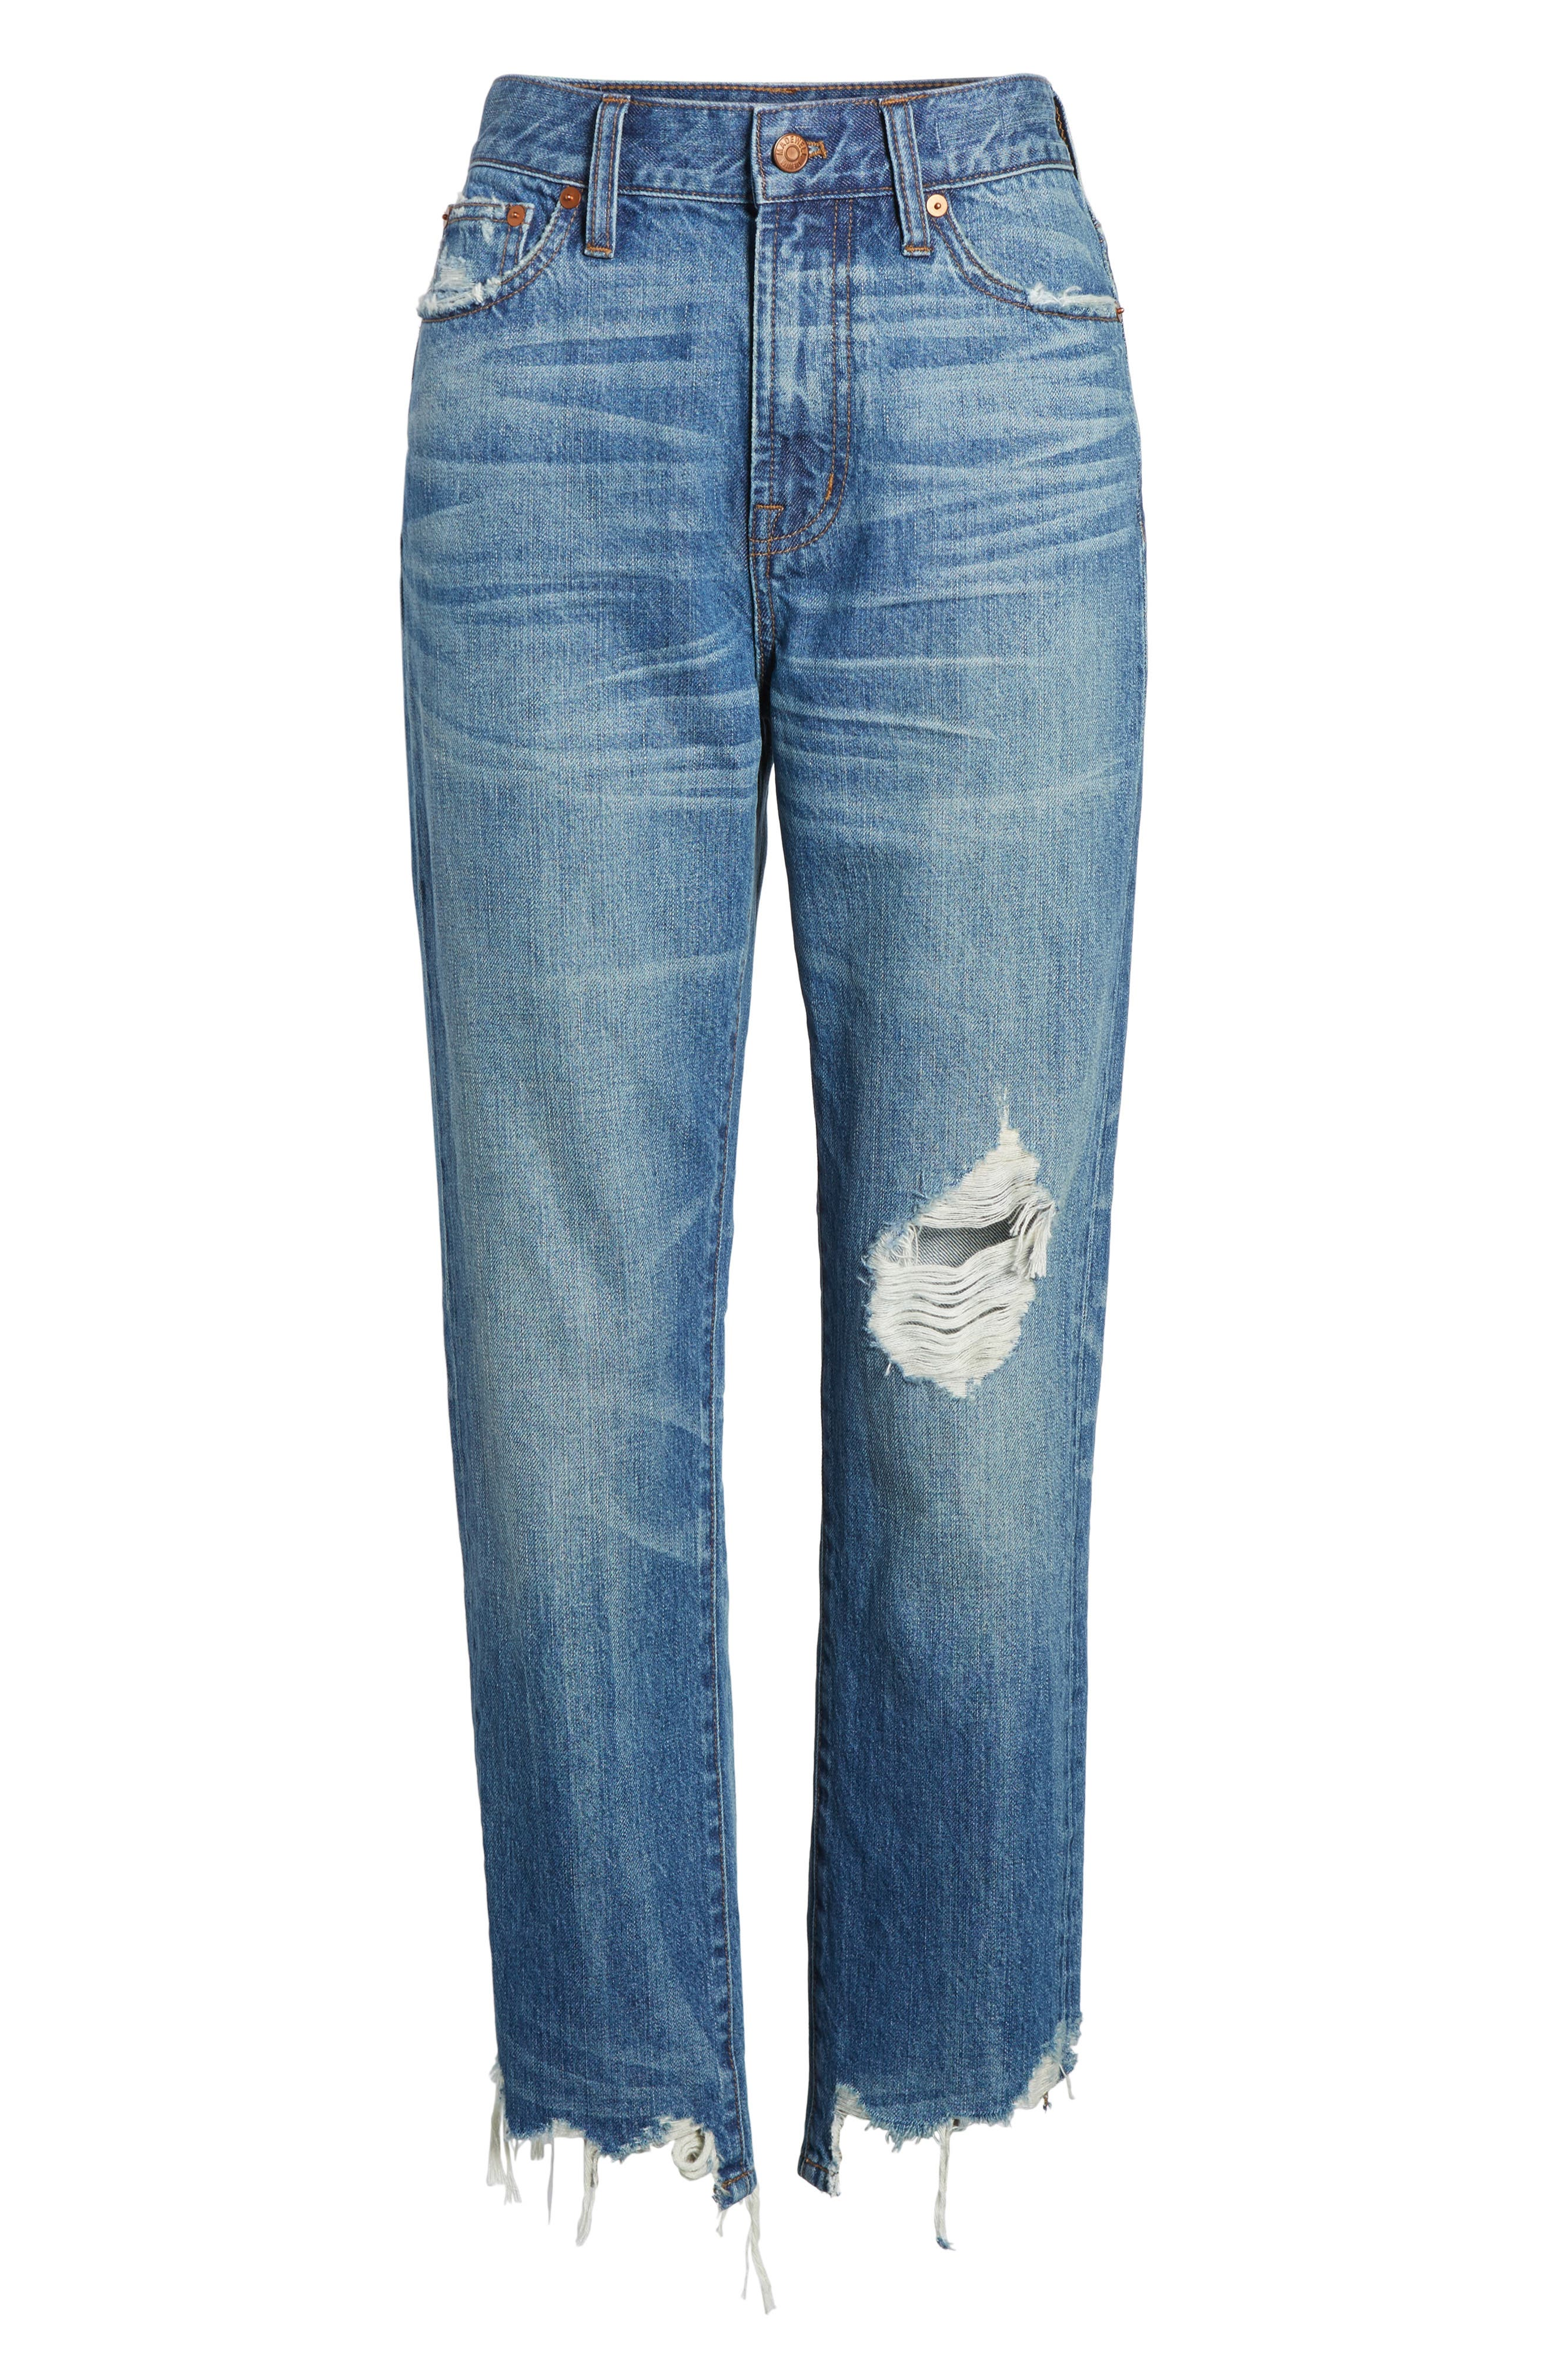 Perfect Summer Ripped High Waist Ankle Jeans,                             Alternate thumbnail 7, color,                             400